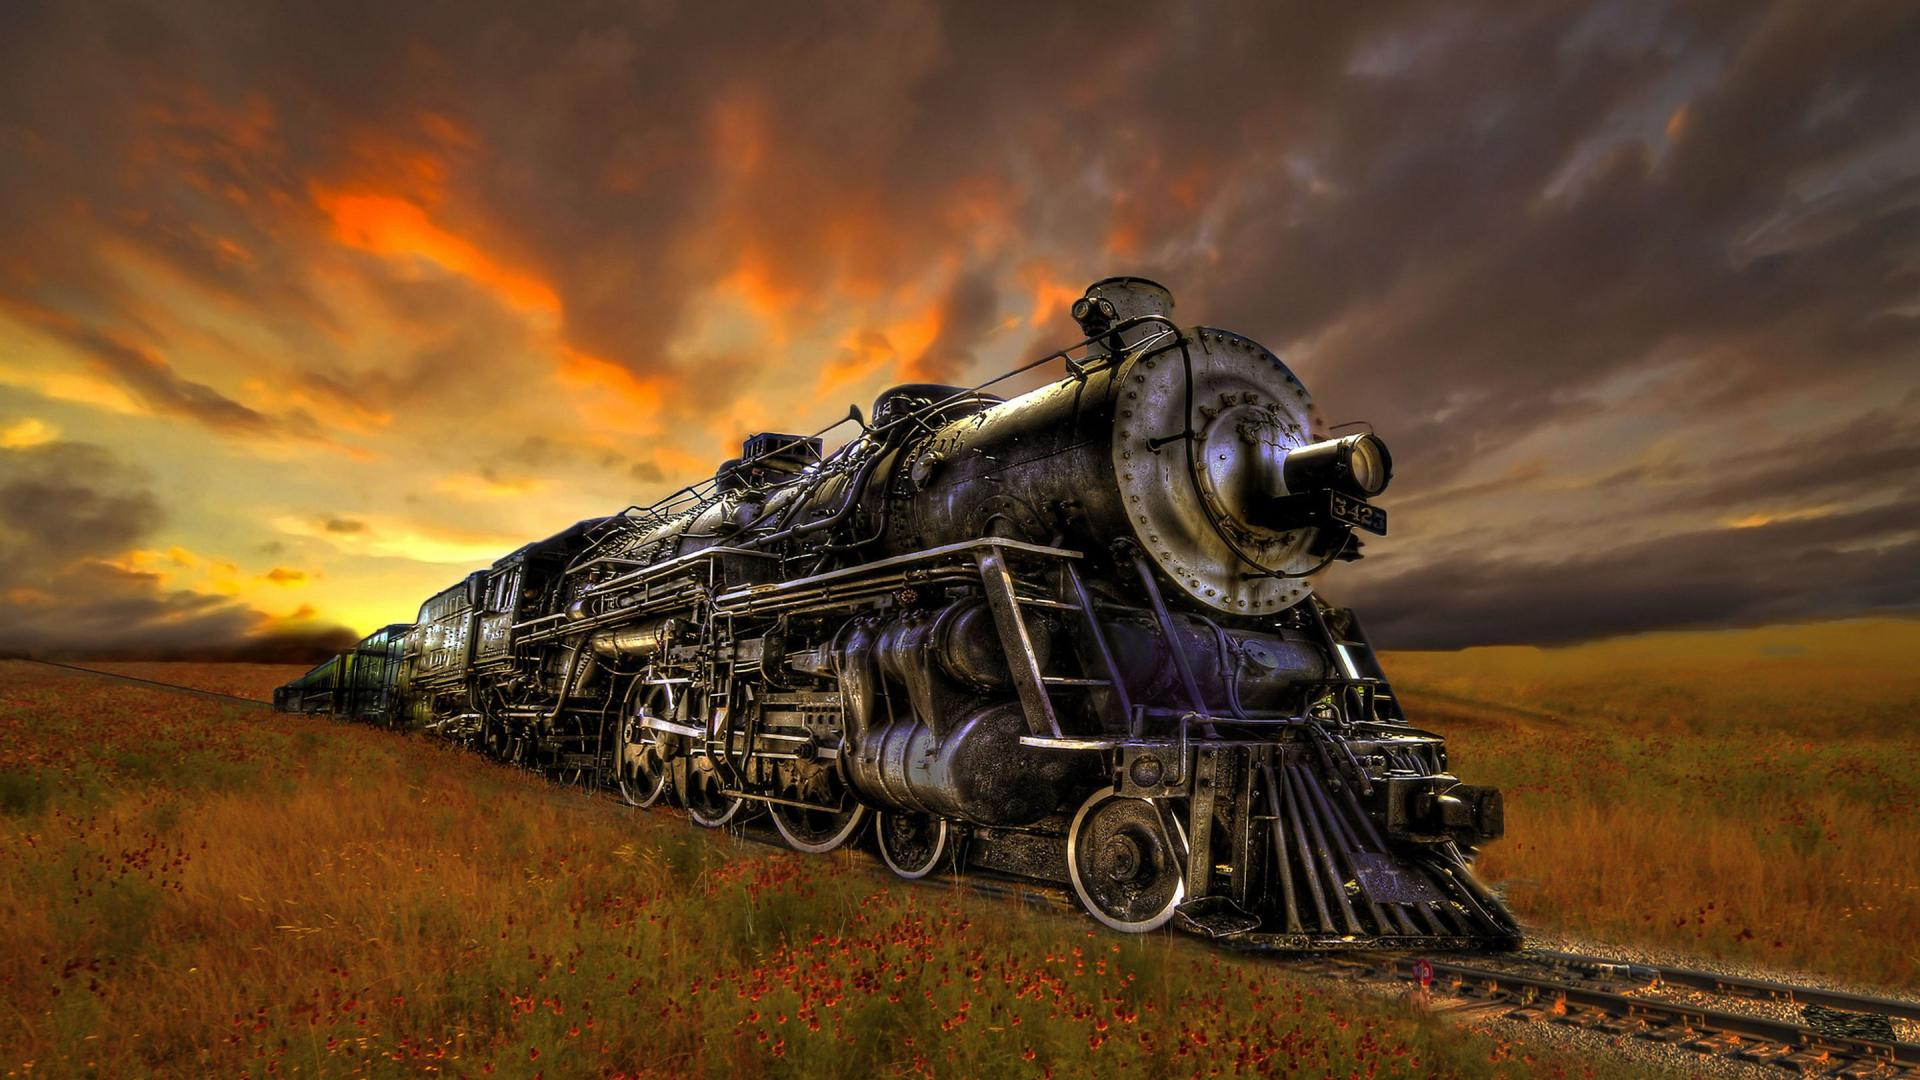 Train wallpapers best wallpapers for Where to get wallpaper